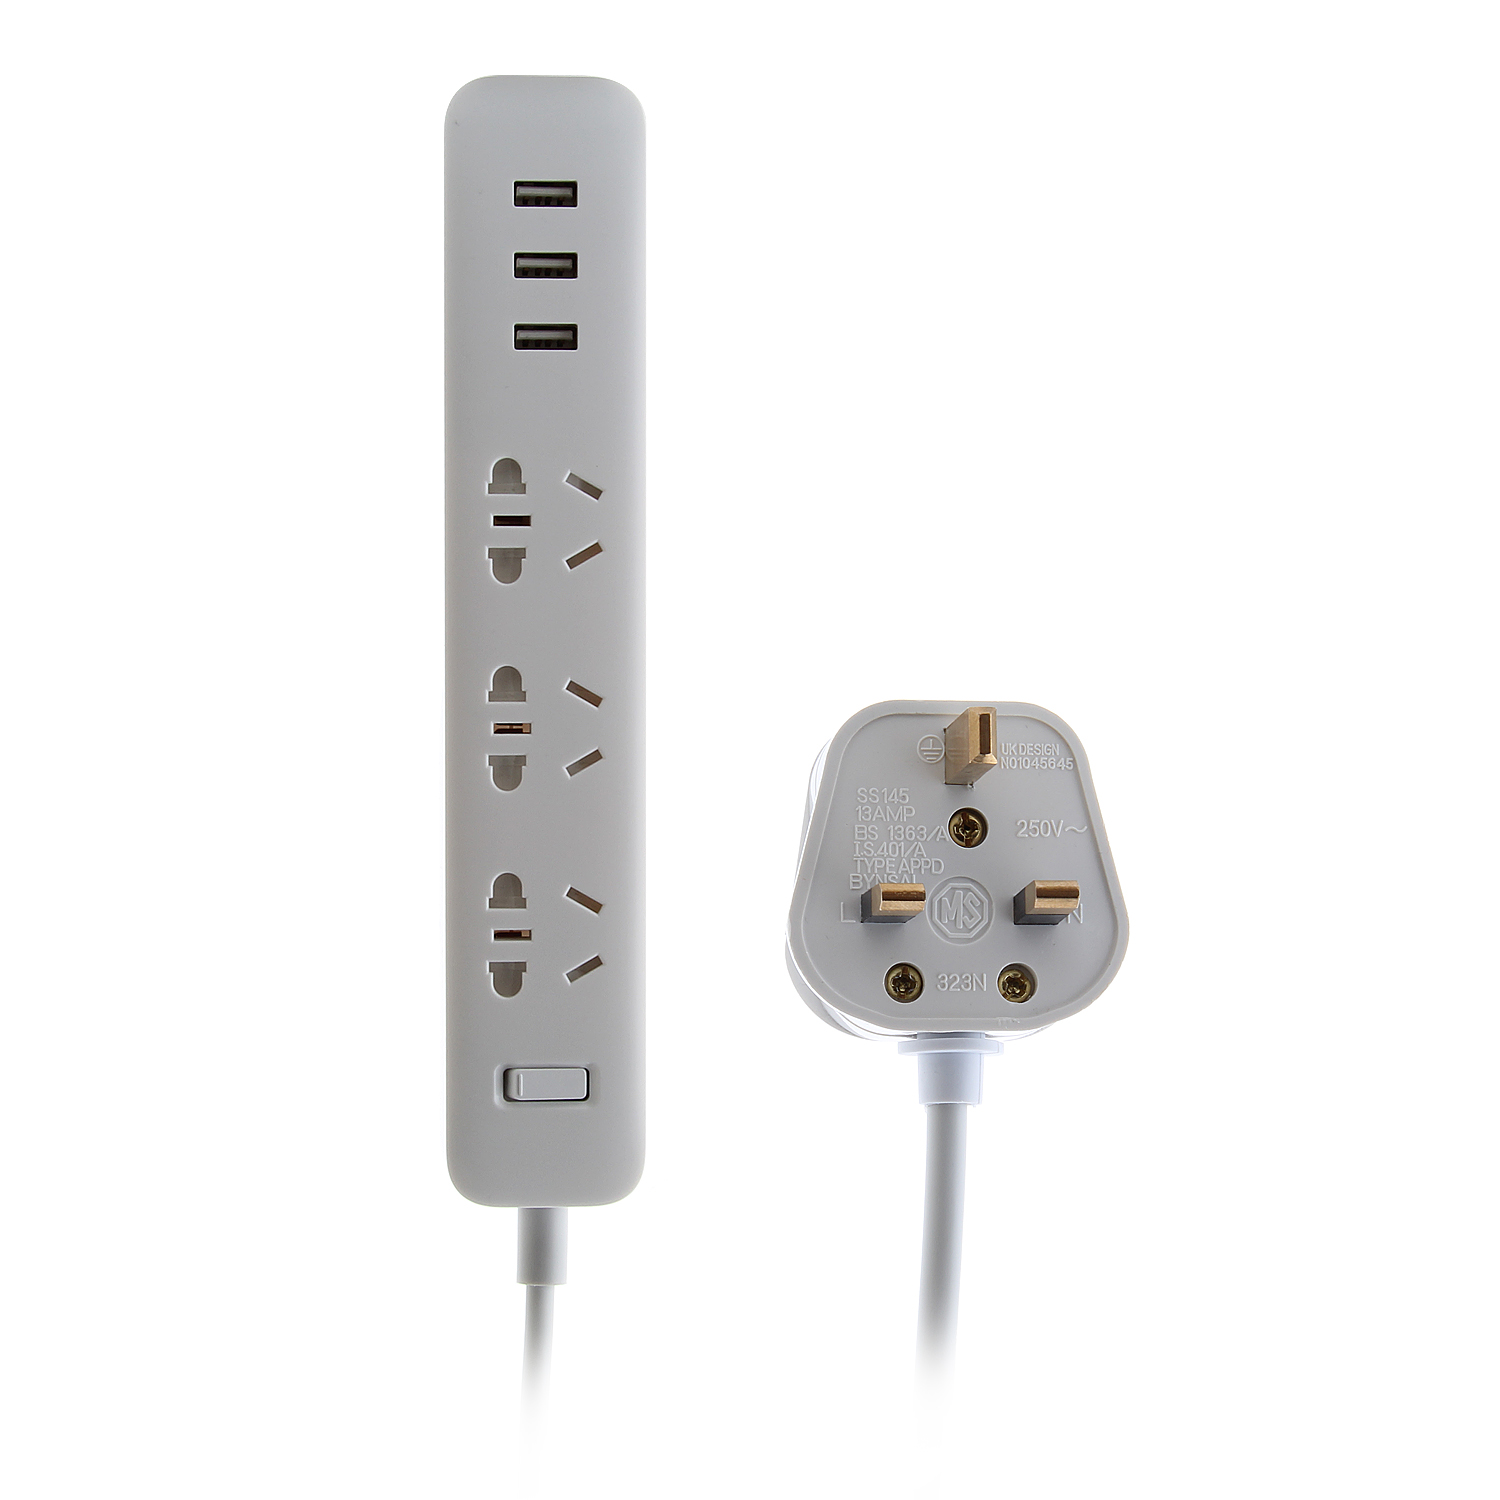 UK Plug XIAOMI Power Strip Outlet Socket Plug 3 USB Charging Port 5V 2.1A